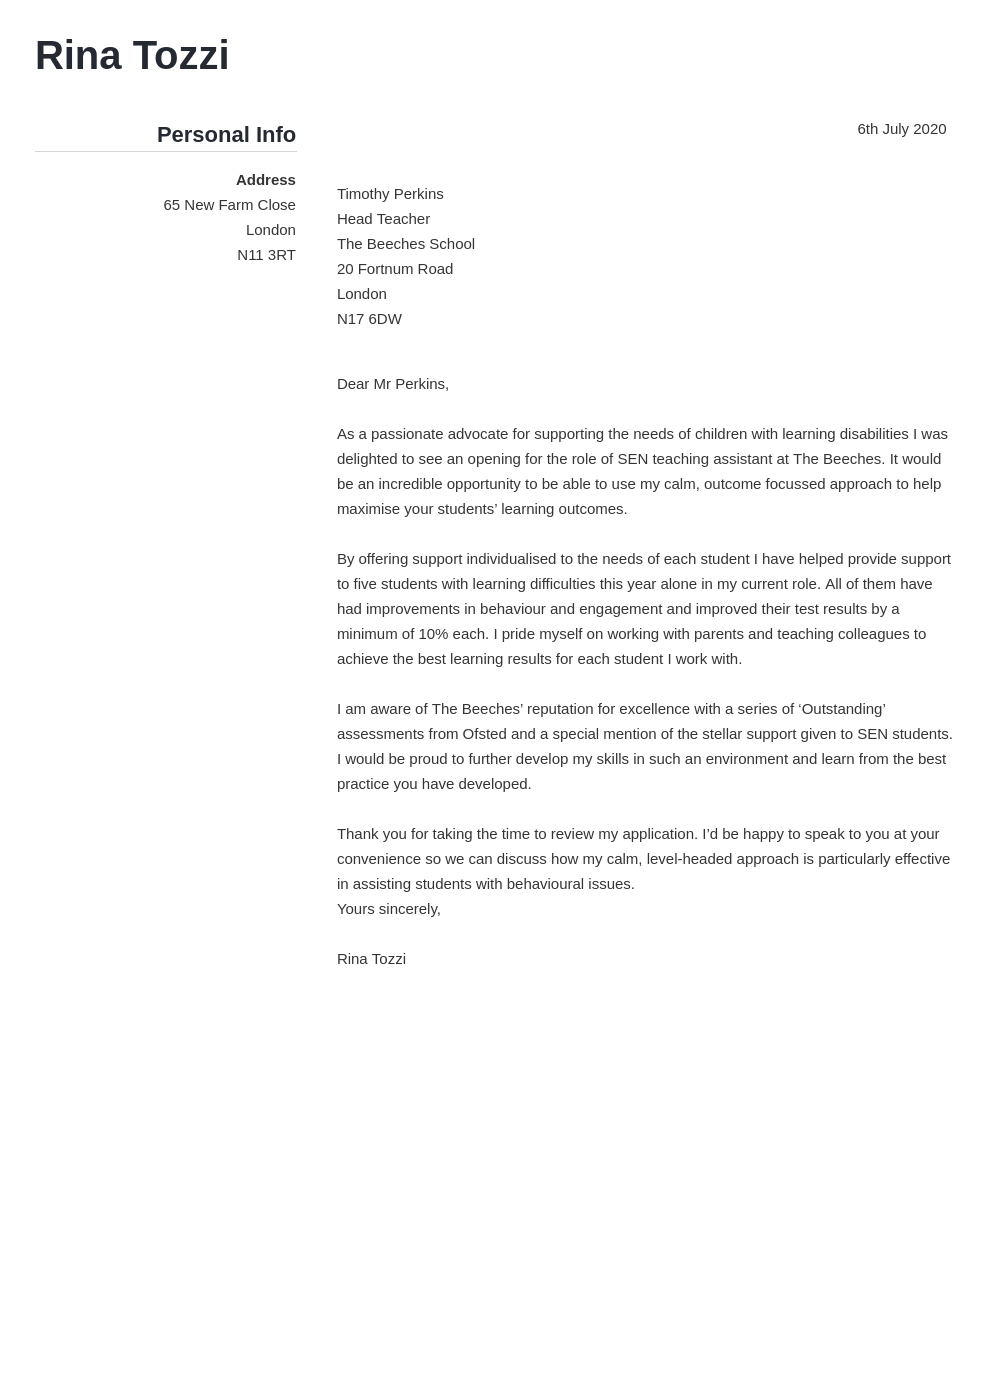 College teaching assistant cover letter esl article review writers service usa